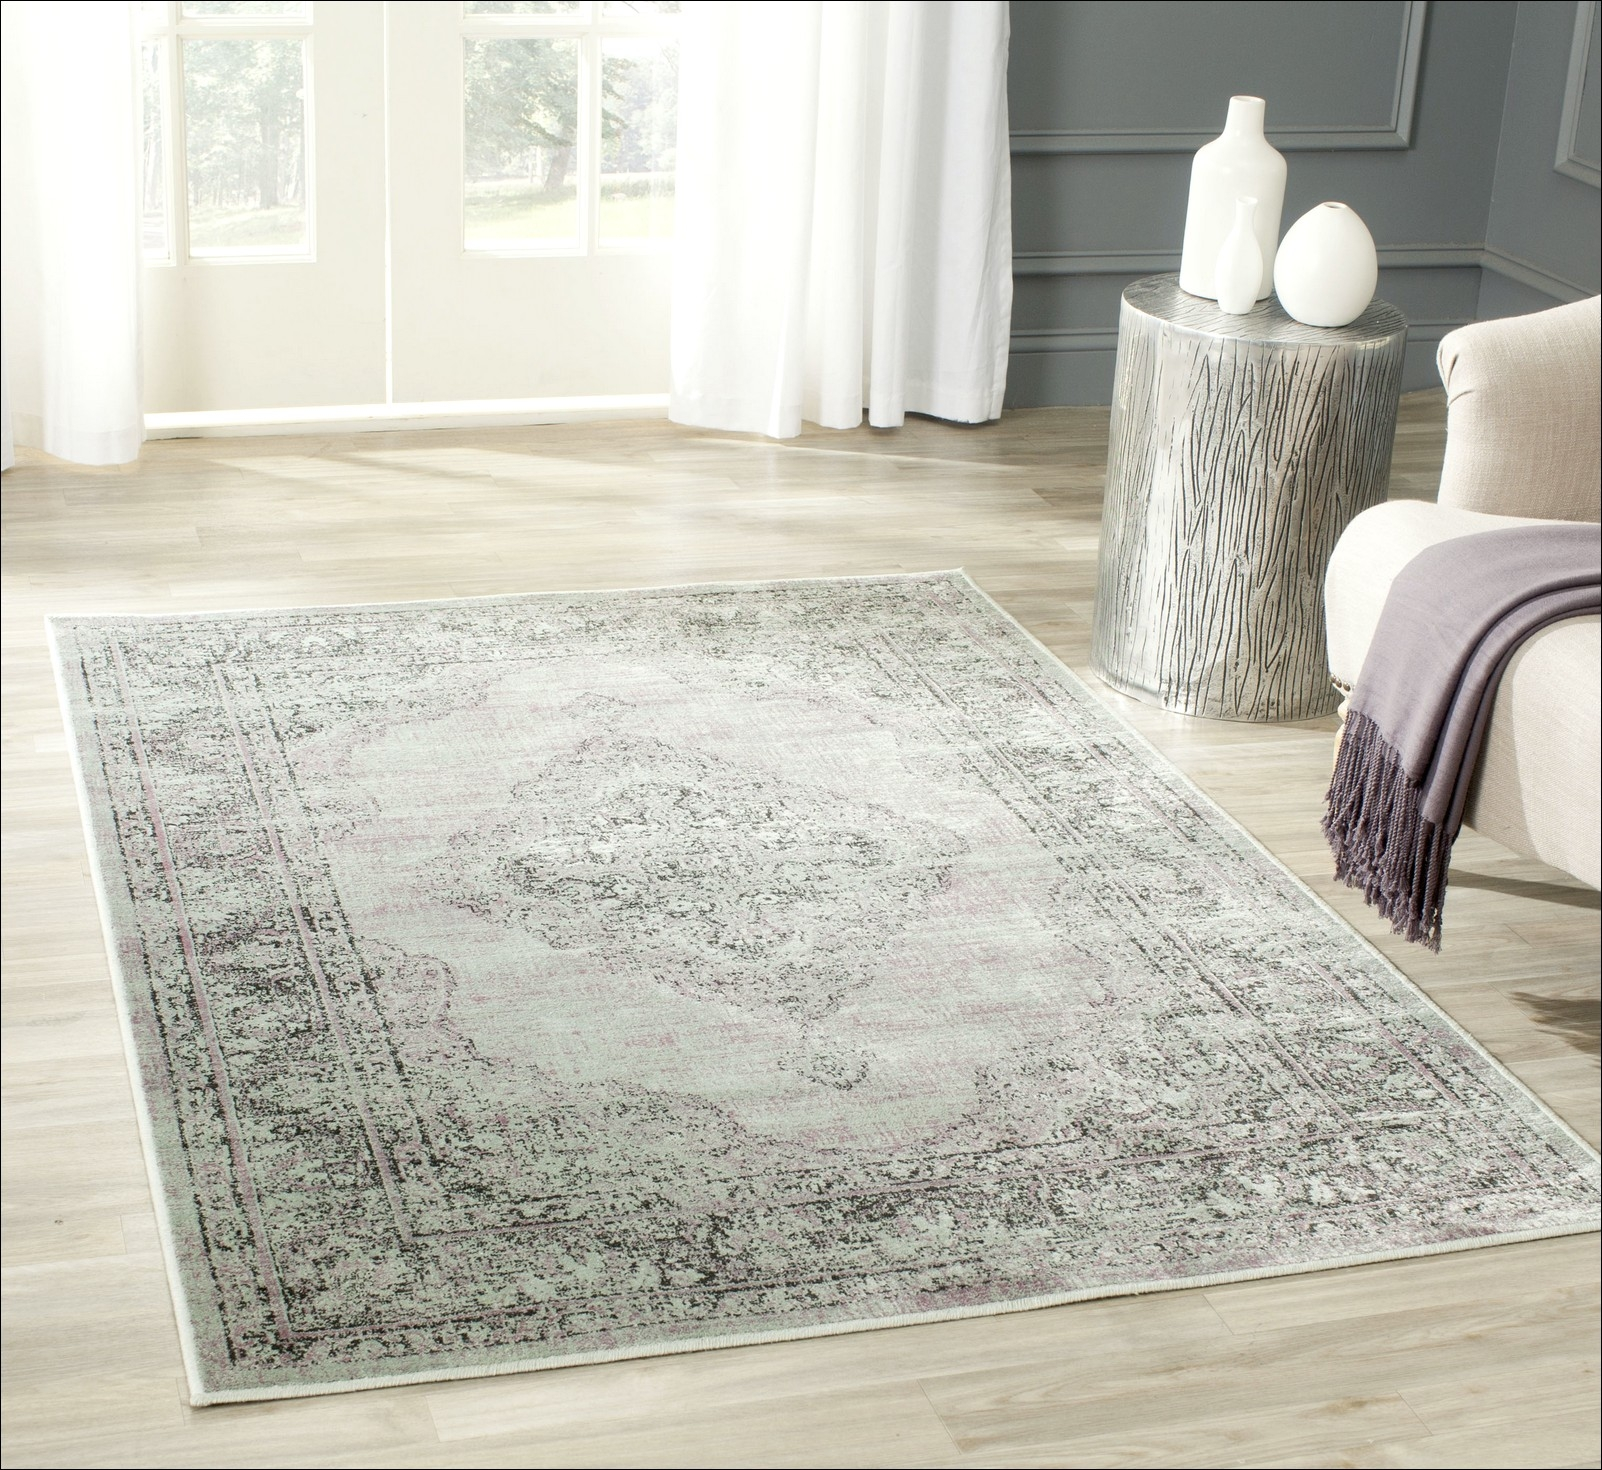 15 inspirations of wool area rugs toronto. Black Bedroom Furniture Sets. Home Design Ideas